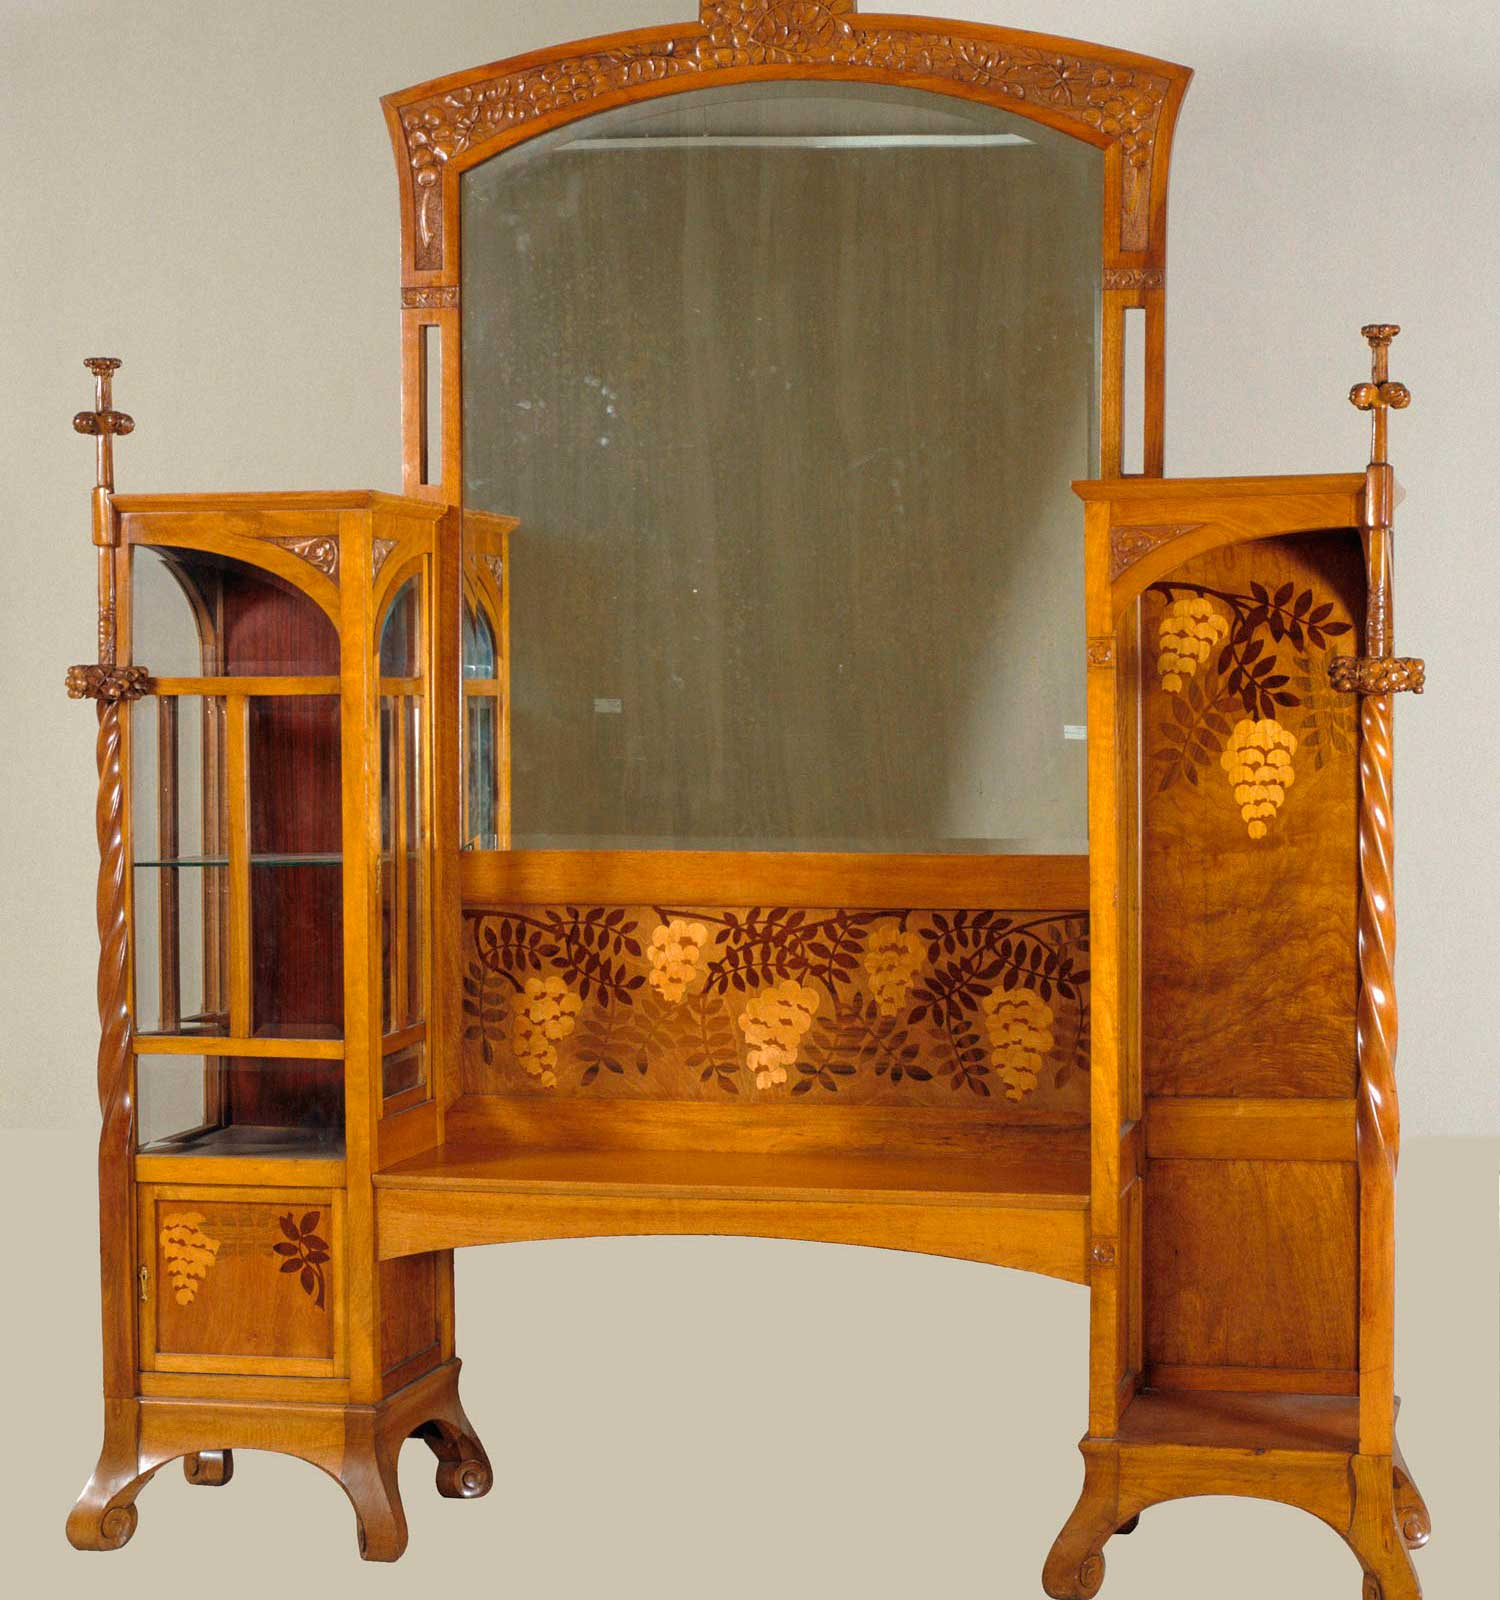 Two-section display cabinet with mirror (1907-1908). Gaspar Homar